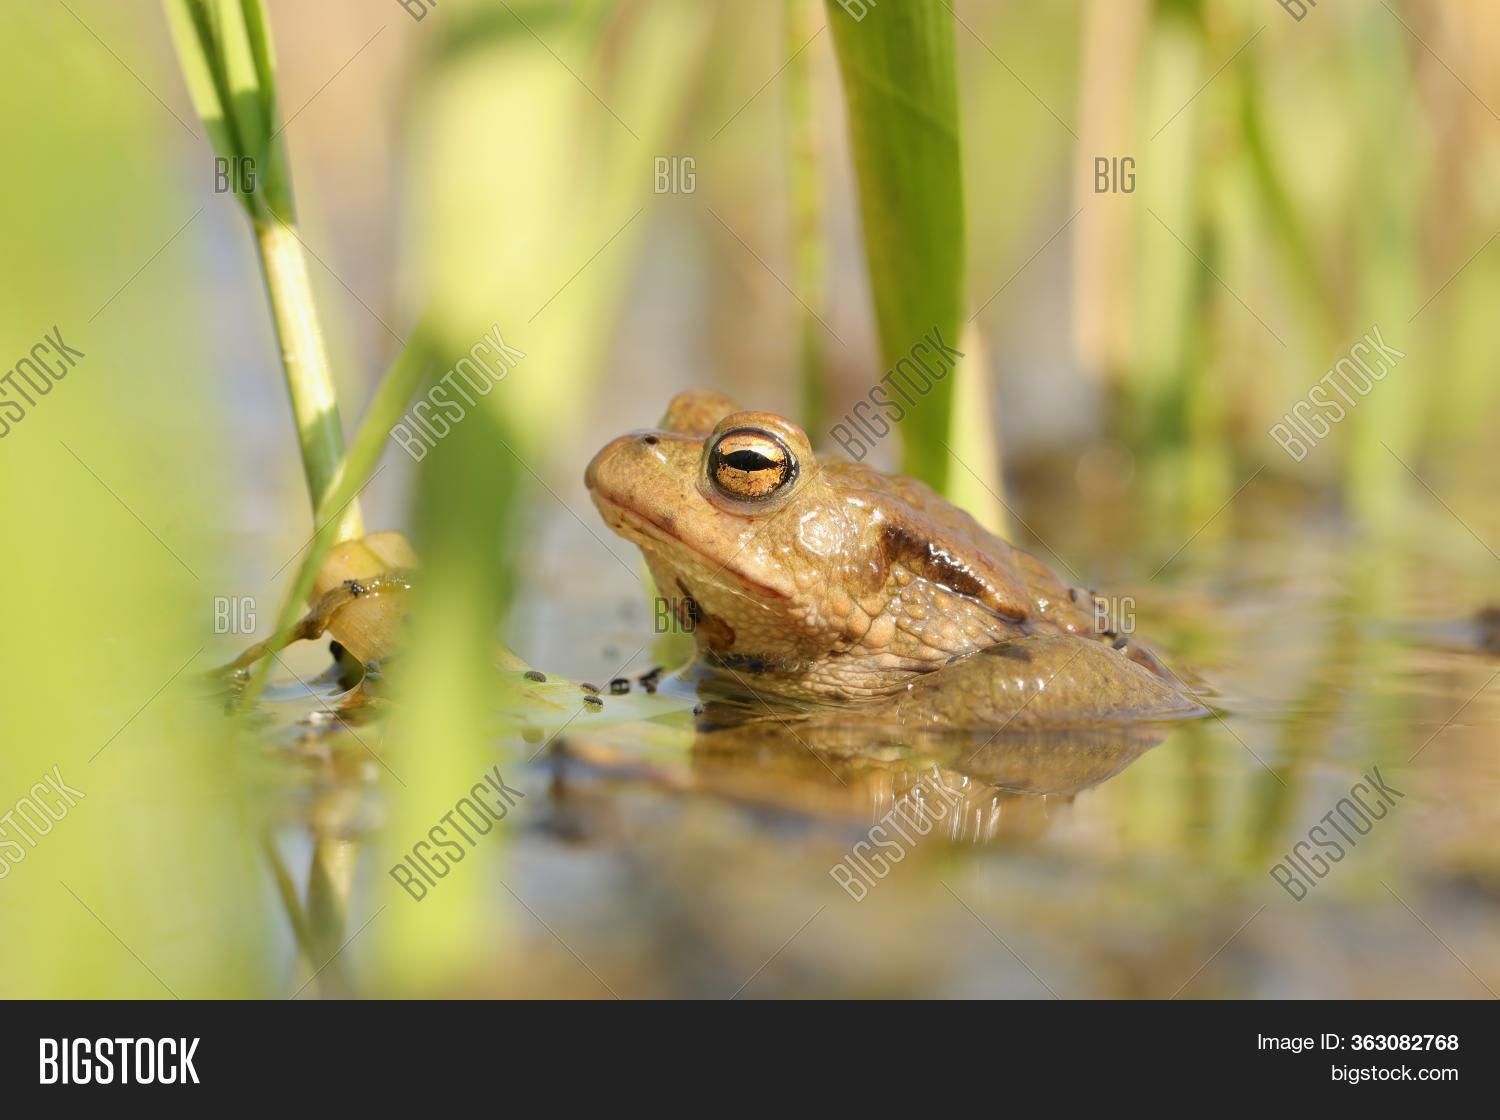 Frog in forest pond water mating season sunny spring Nature background Nature background Frogs toad Natural environment Nature background macro Nature closeup Nature background outdoor vibrant scenic Nature background Nature background Nature background.